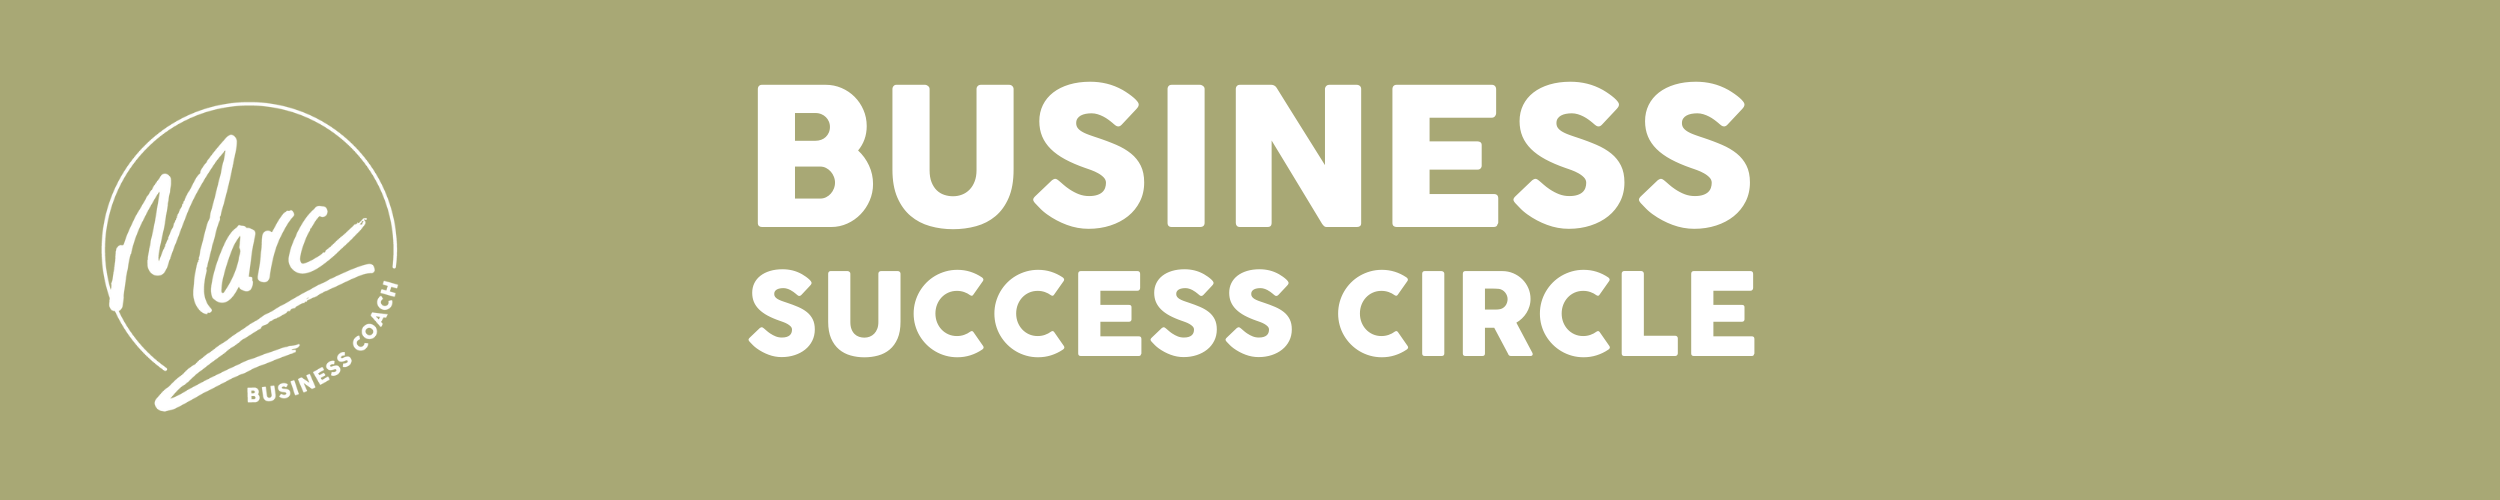 The Business Success Circle - A business network/workshop/collab group building businesses faster together with Marc Ford, Business Coach in Leicestershire